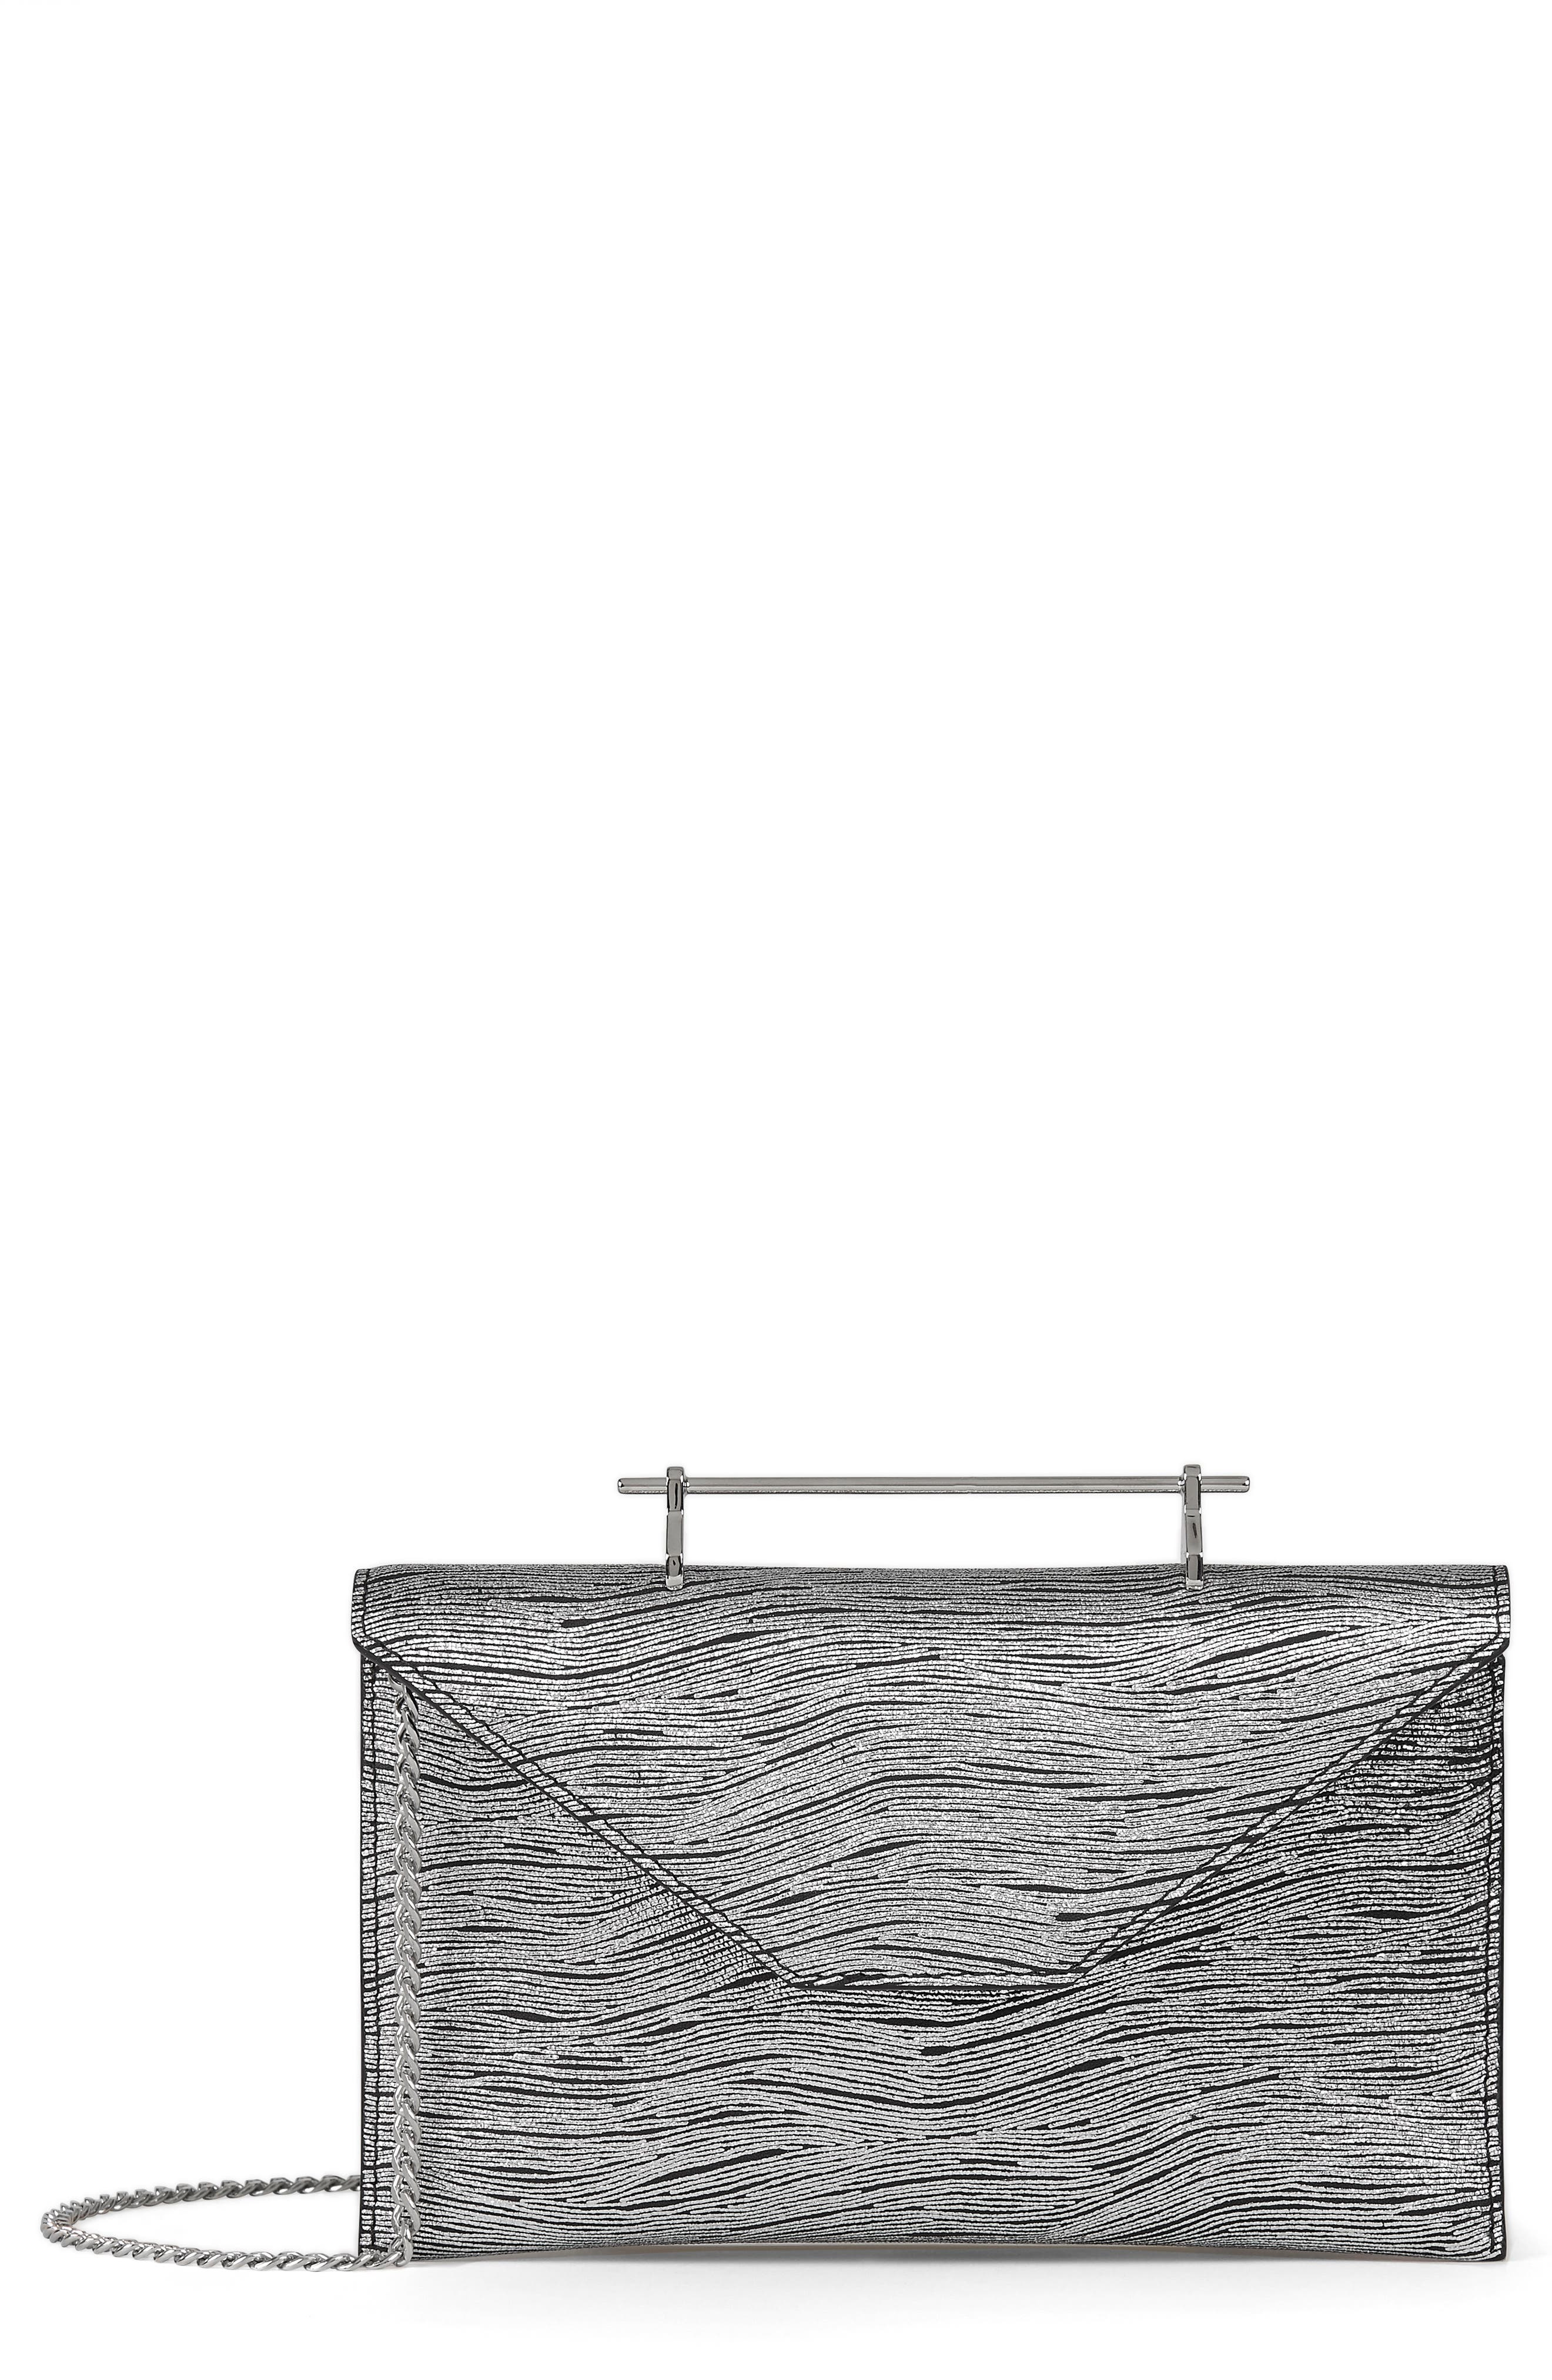 Alternate Image 1 Selected - M2Malletier Annabelle Metallic Calfskin Leather Clutch